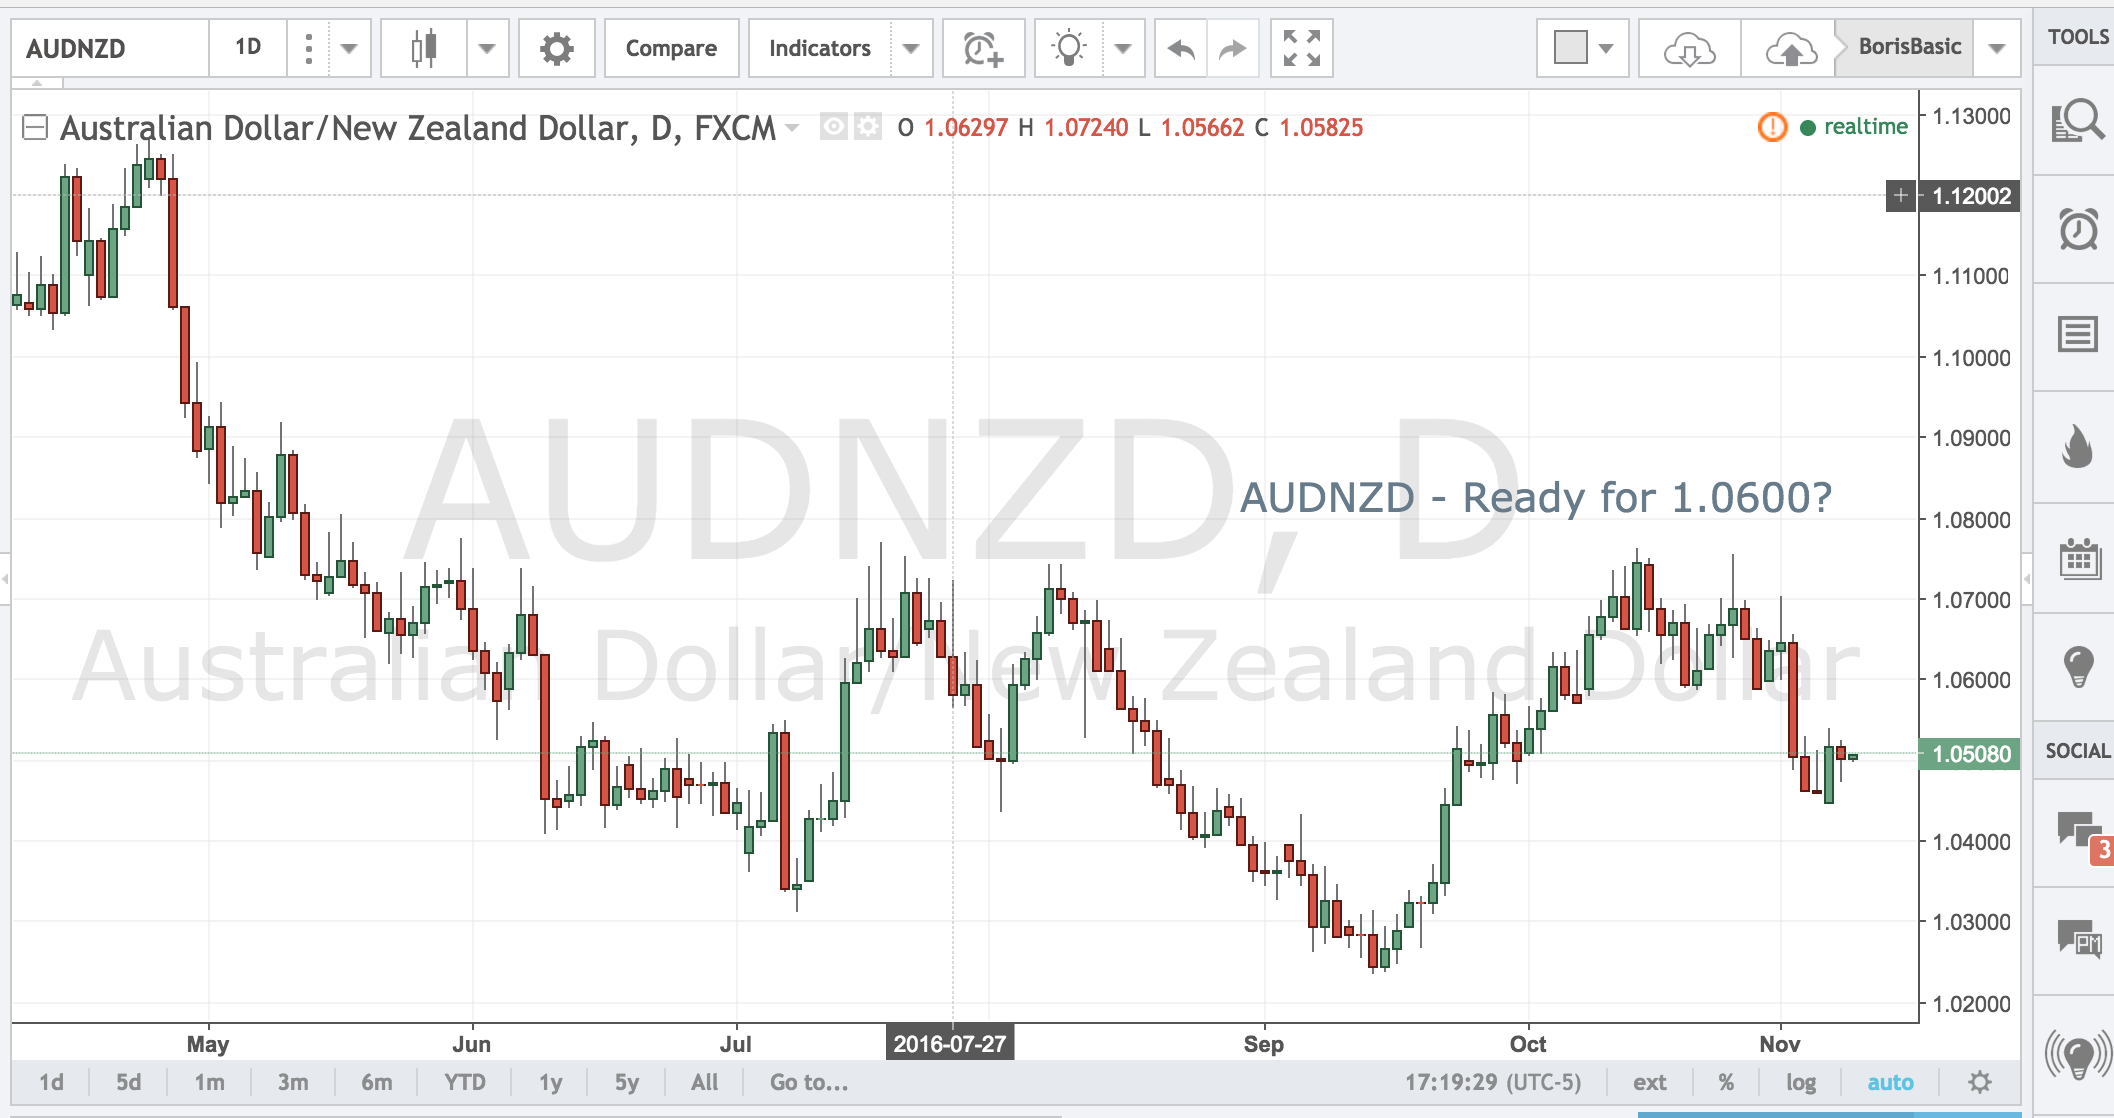 AUDNZD – Ready for 1.0600?